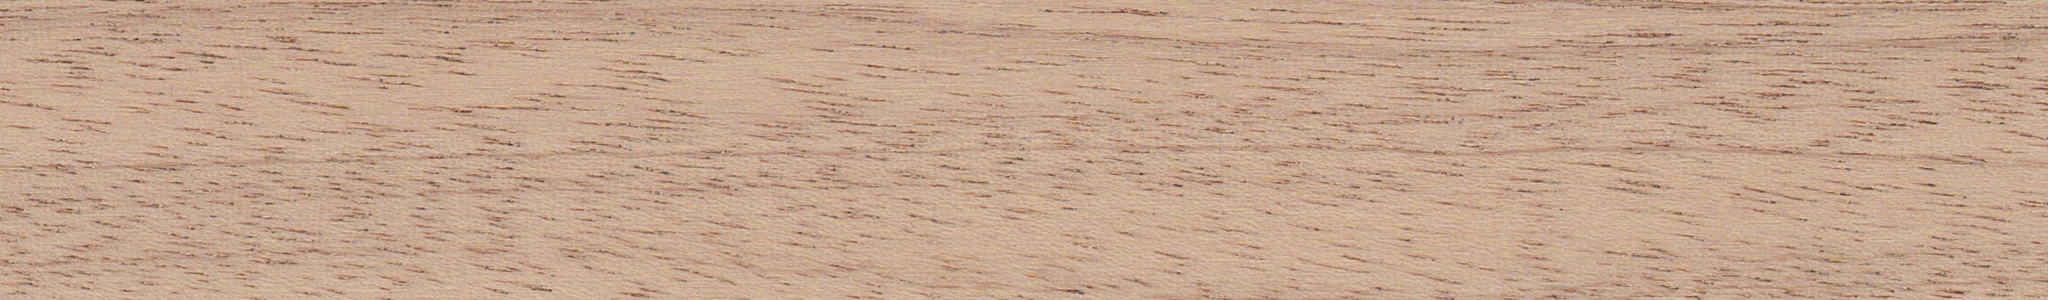 HD 78120 Veneer Edge Mahogany Preglued